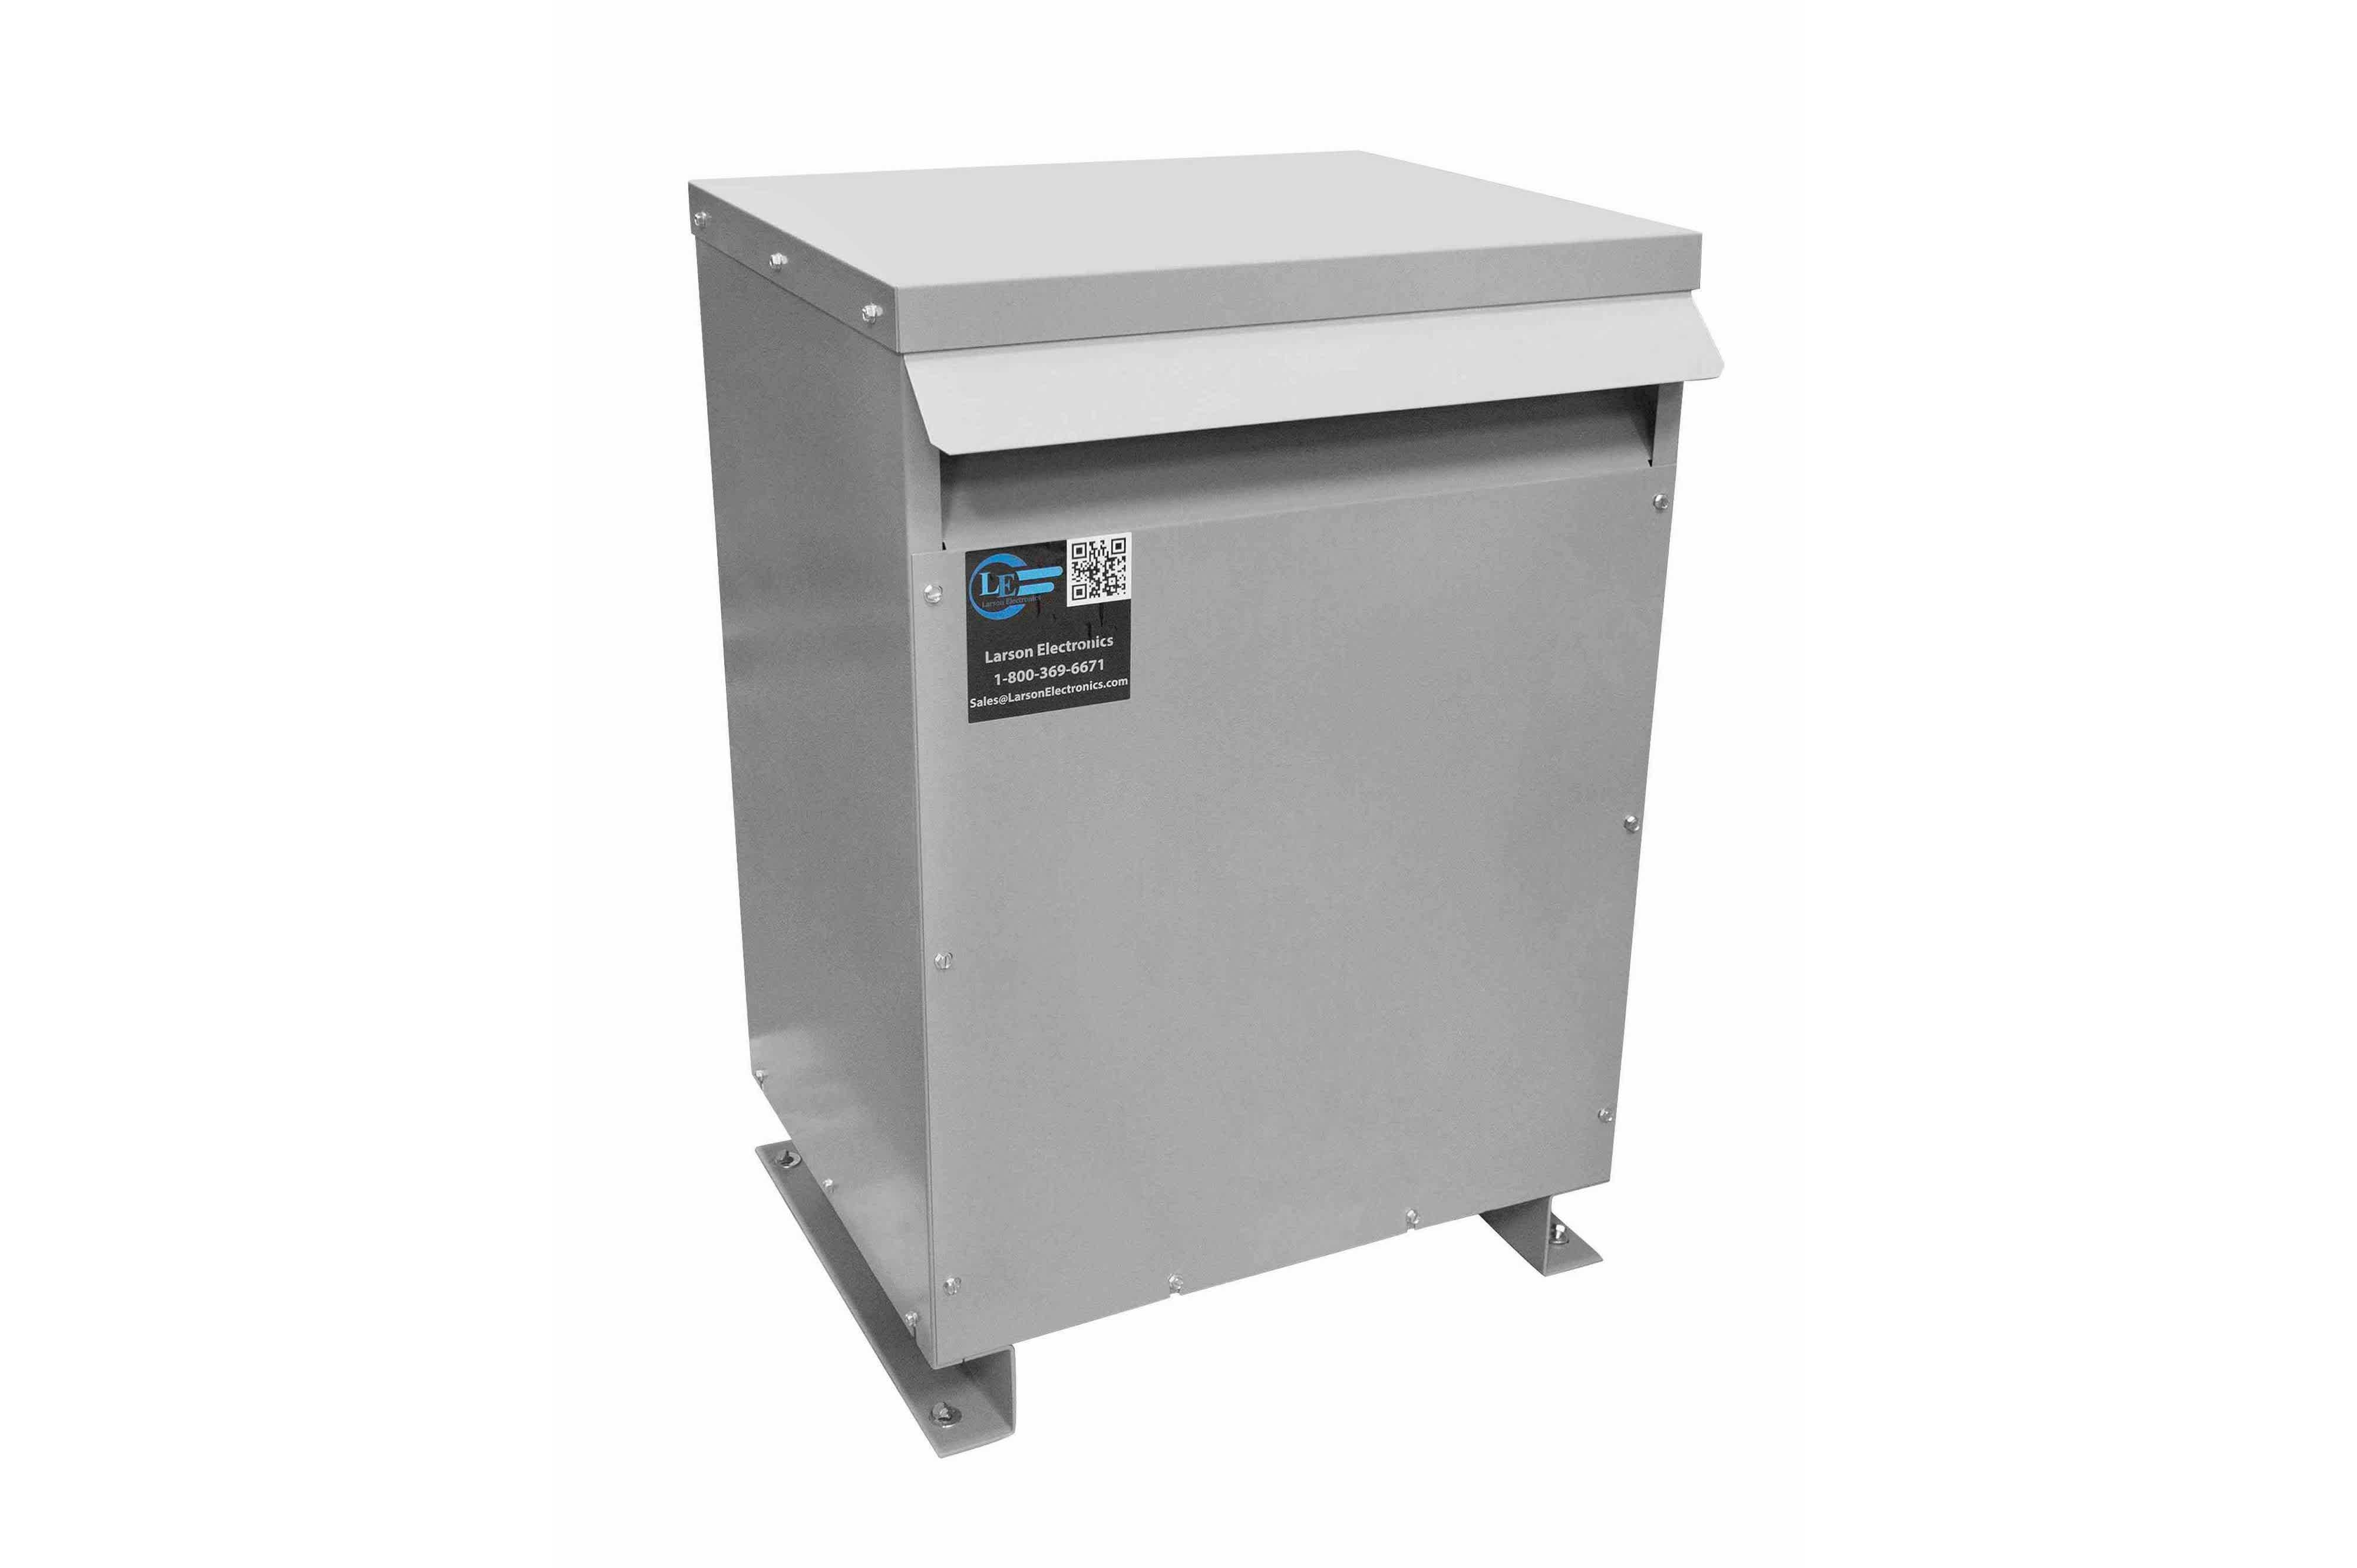 1000 kVA 3PH Isolation Transformer, 240V Delta Primary, 480V Delta Secondary, N3R, Ventilated, 60 Hz